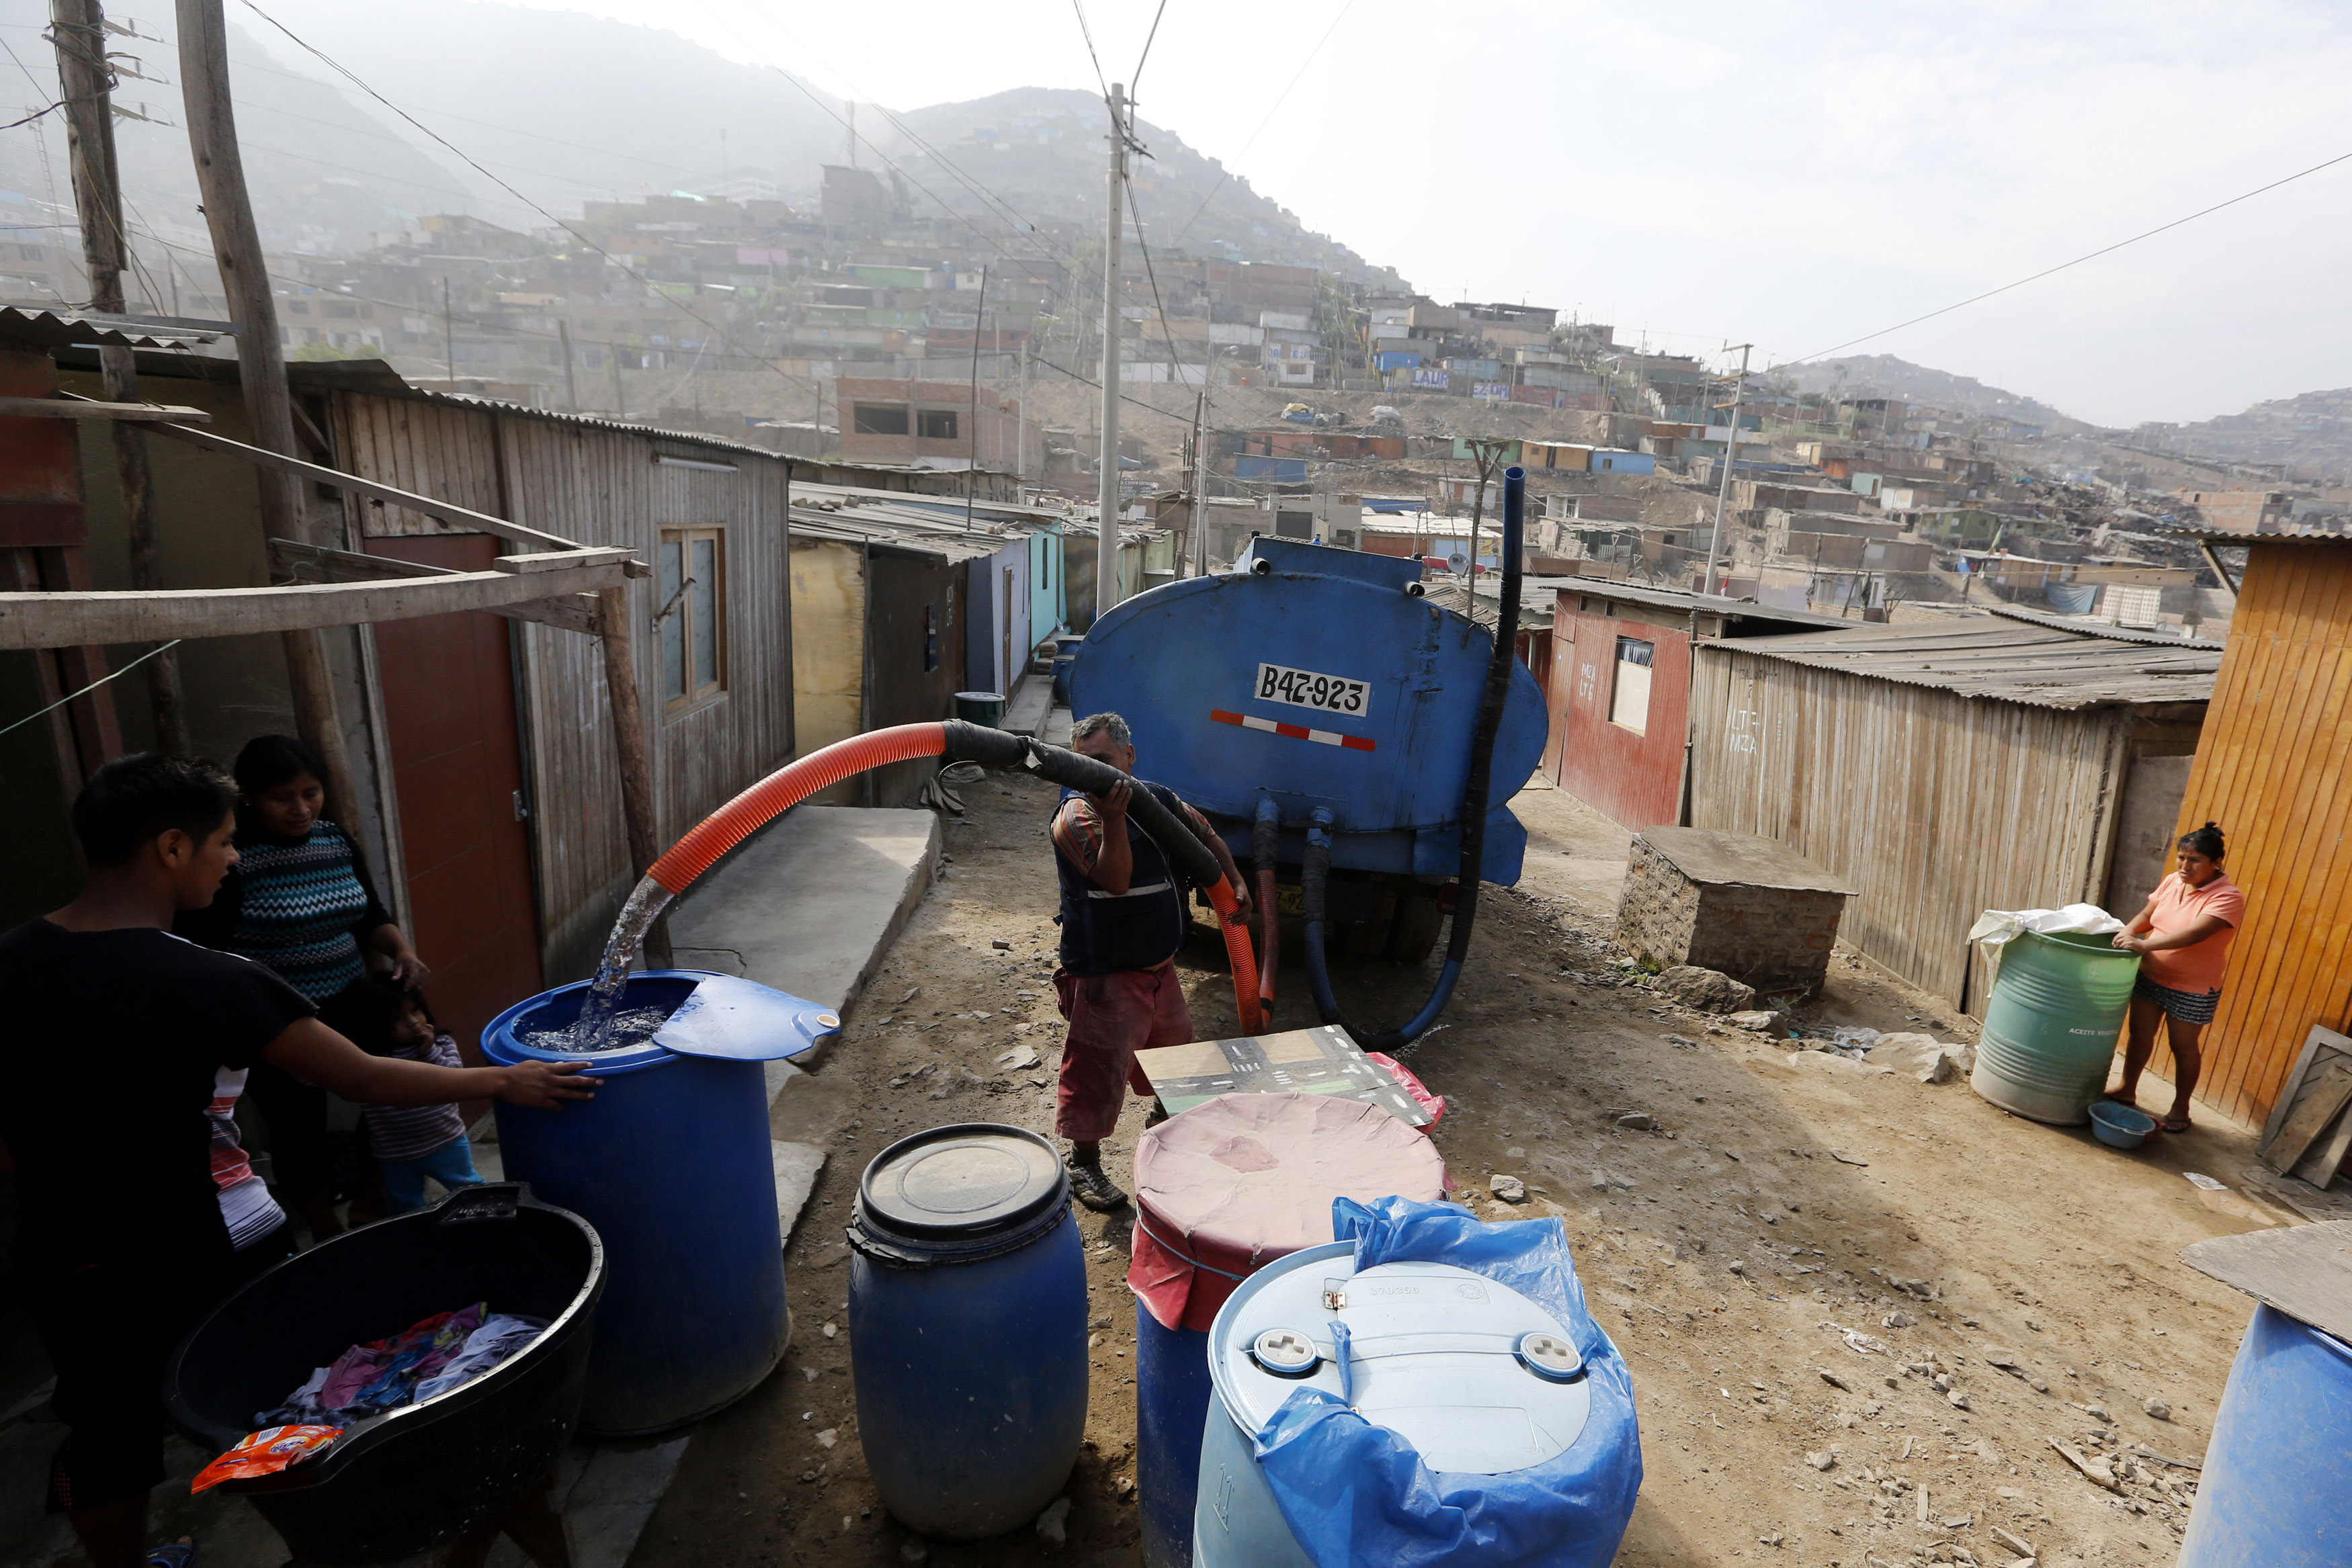 A man delivers water from a tanker in San Juan de Miraflores on the outskirts of Lima, Peru.